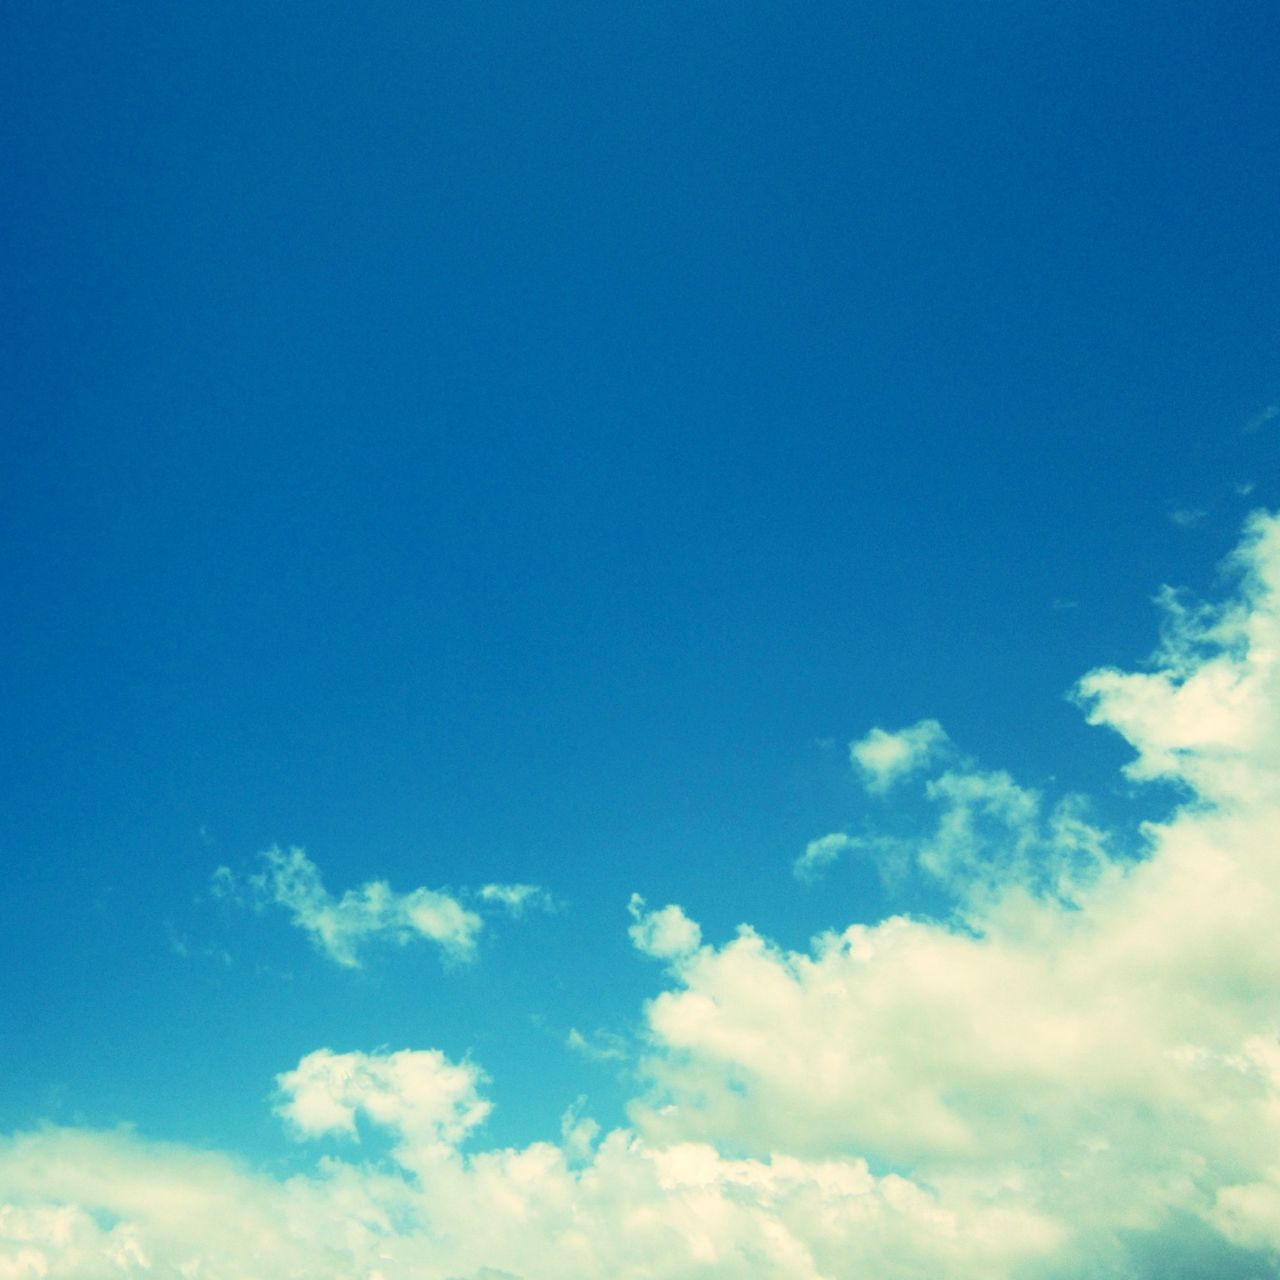 blue, beauty in nature, nature, low angle view, sky, sky only, scenics, backgrounds, no people, day, cloud - sky, tranquility, outdoors, tranquil scene, full frame